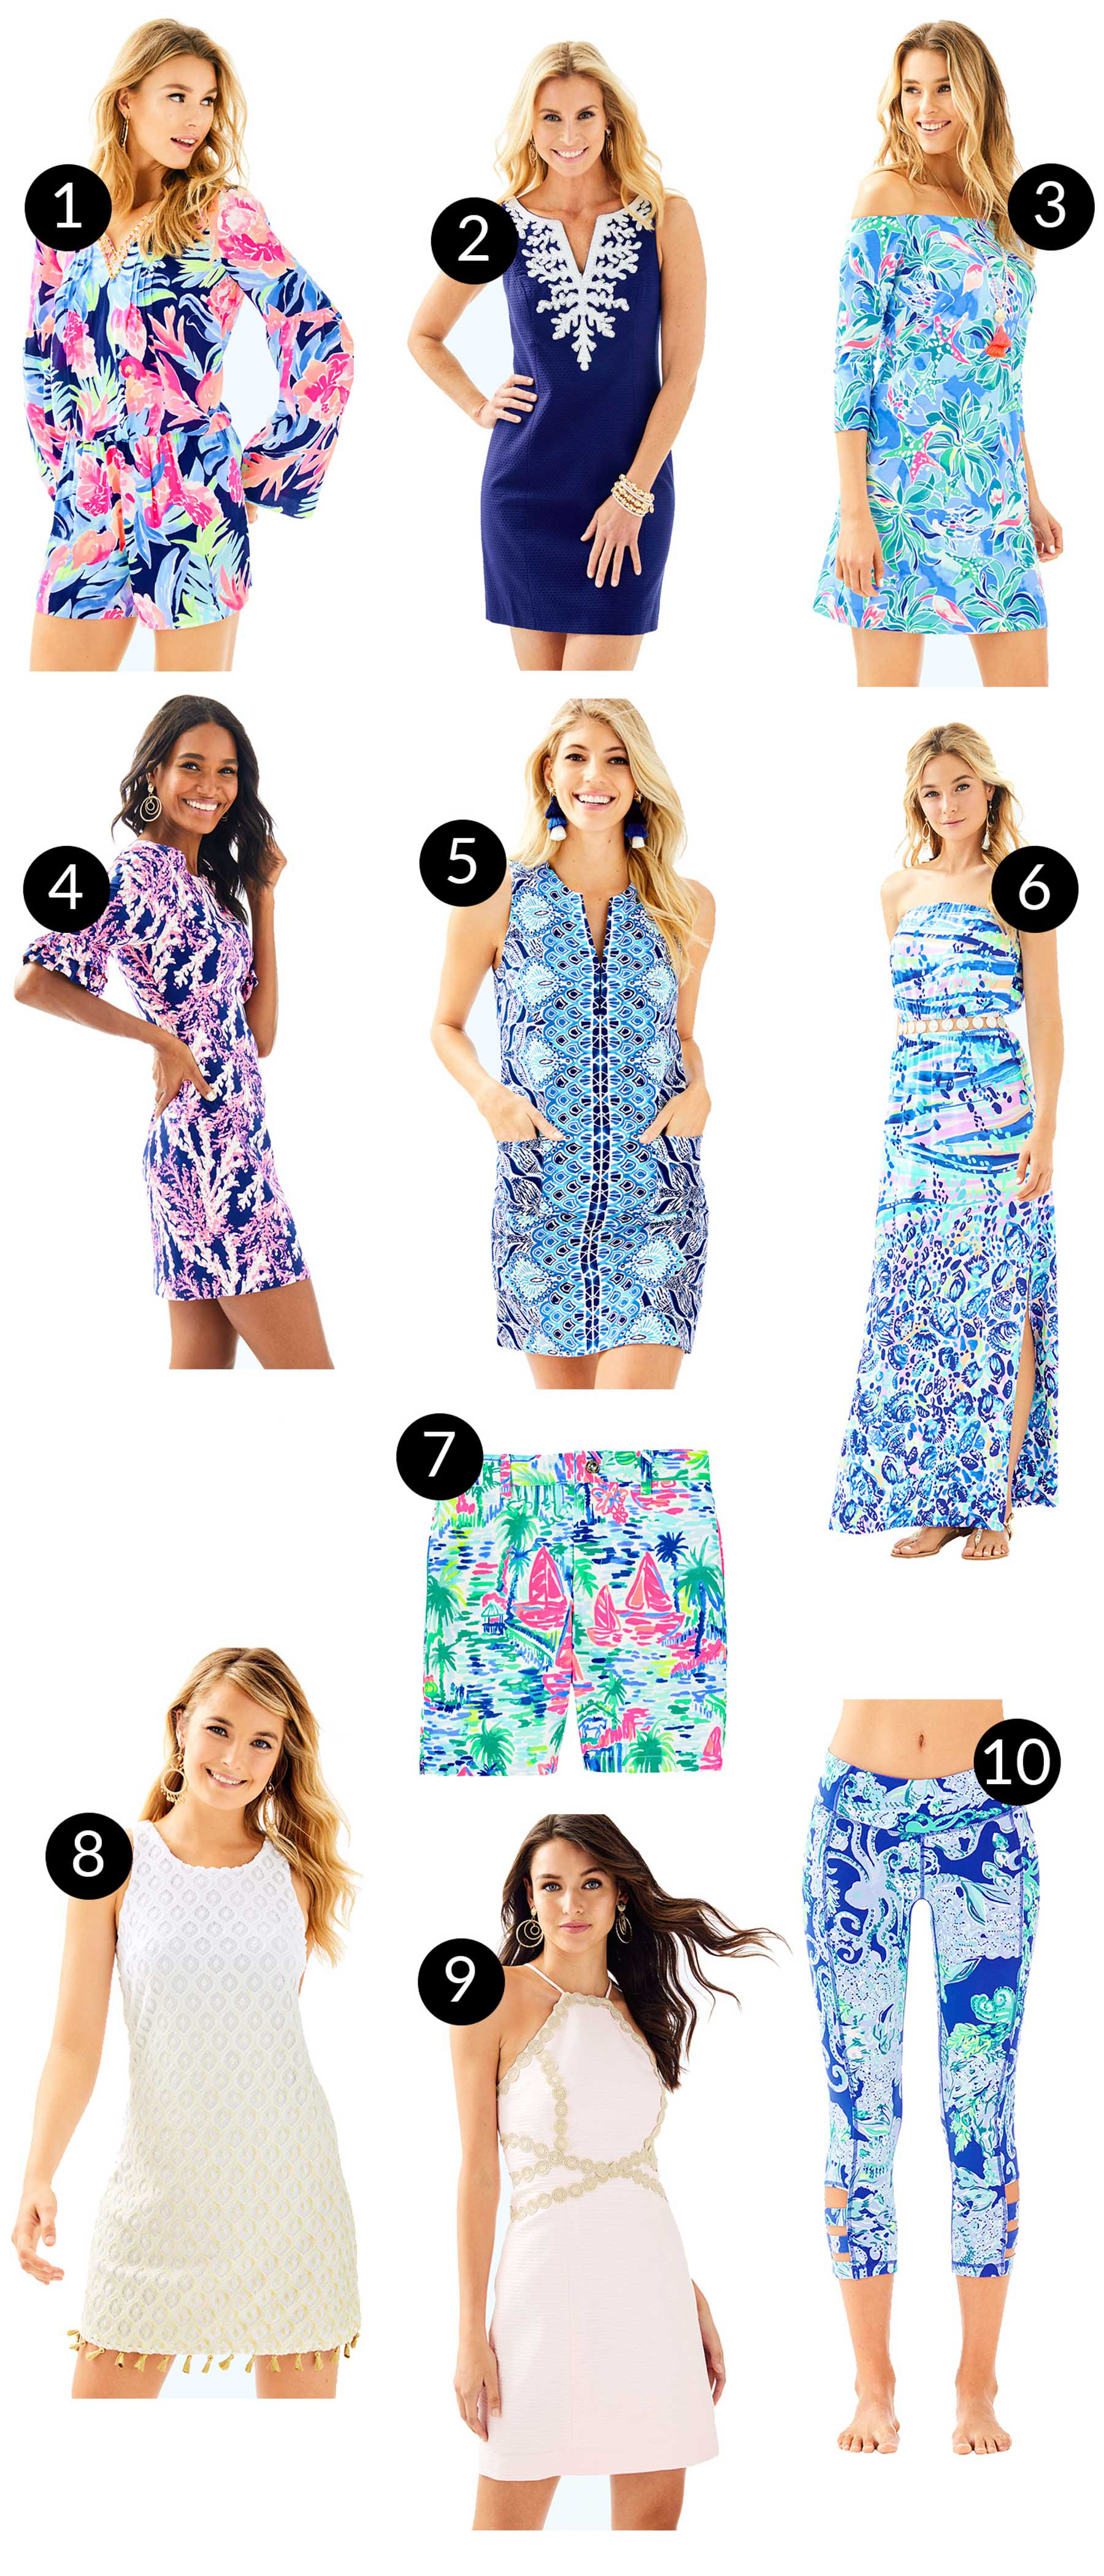 Live Feed: Lilly Pulitzer After Party Sale + $300 Giveaway - dresses